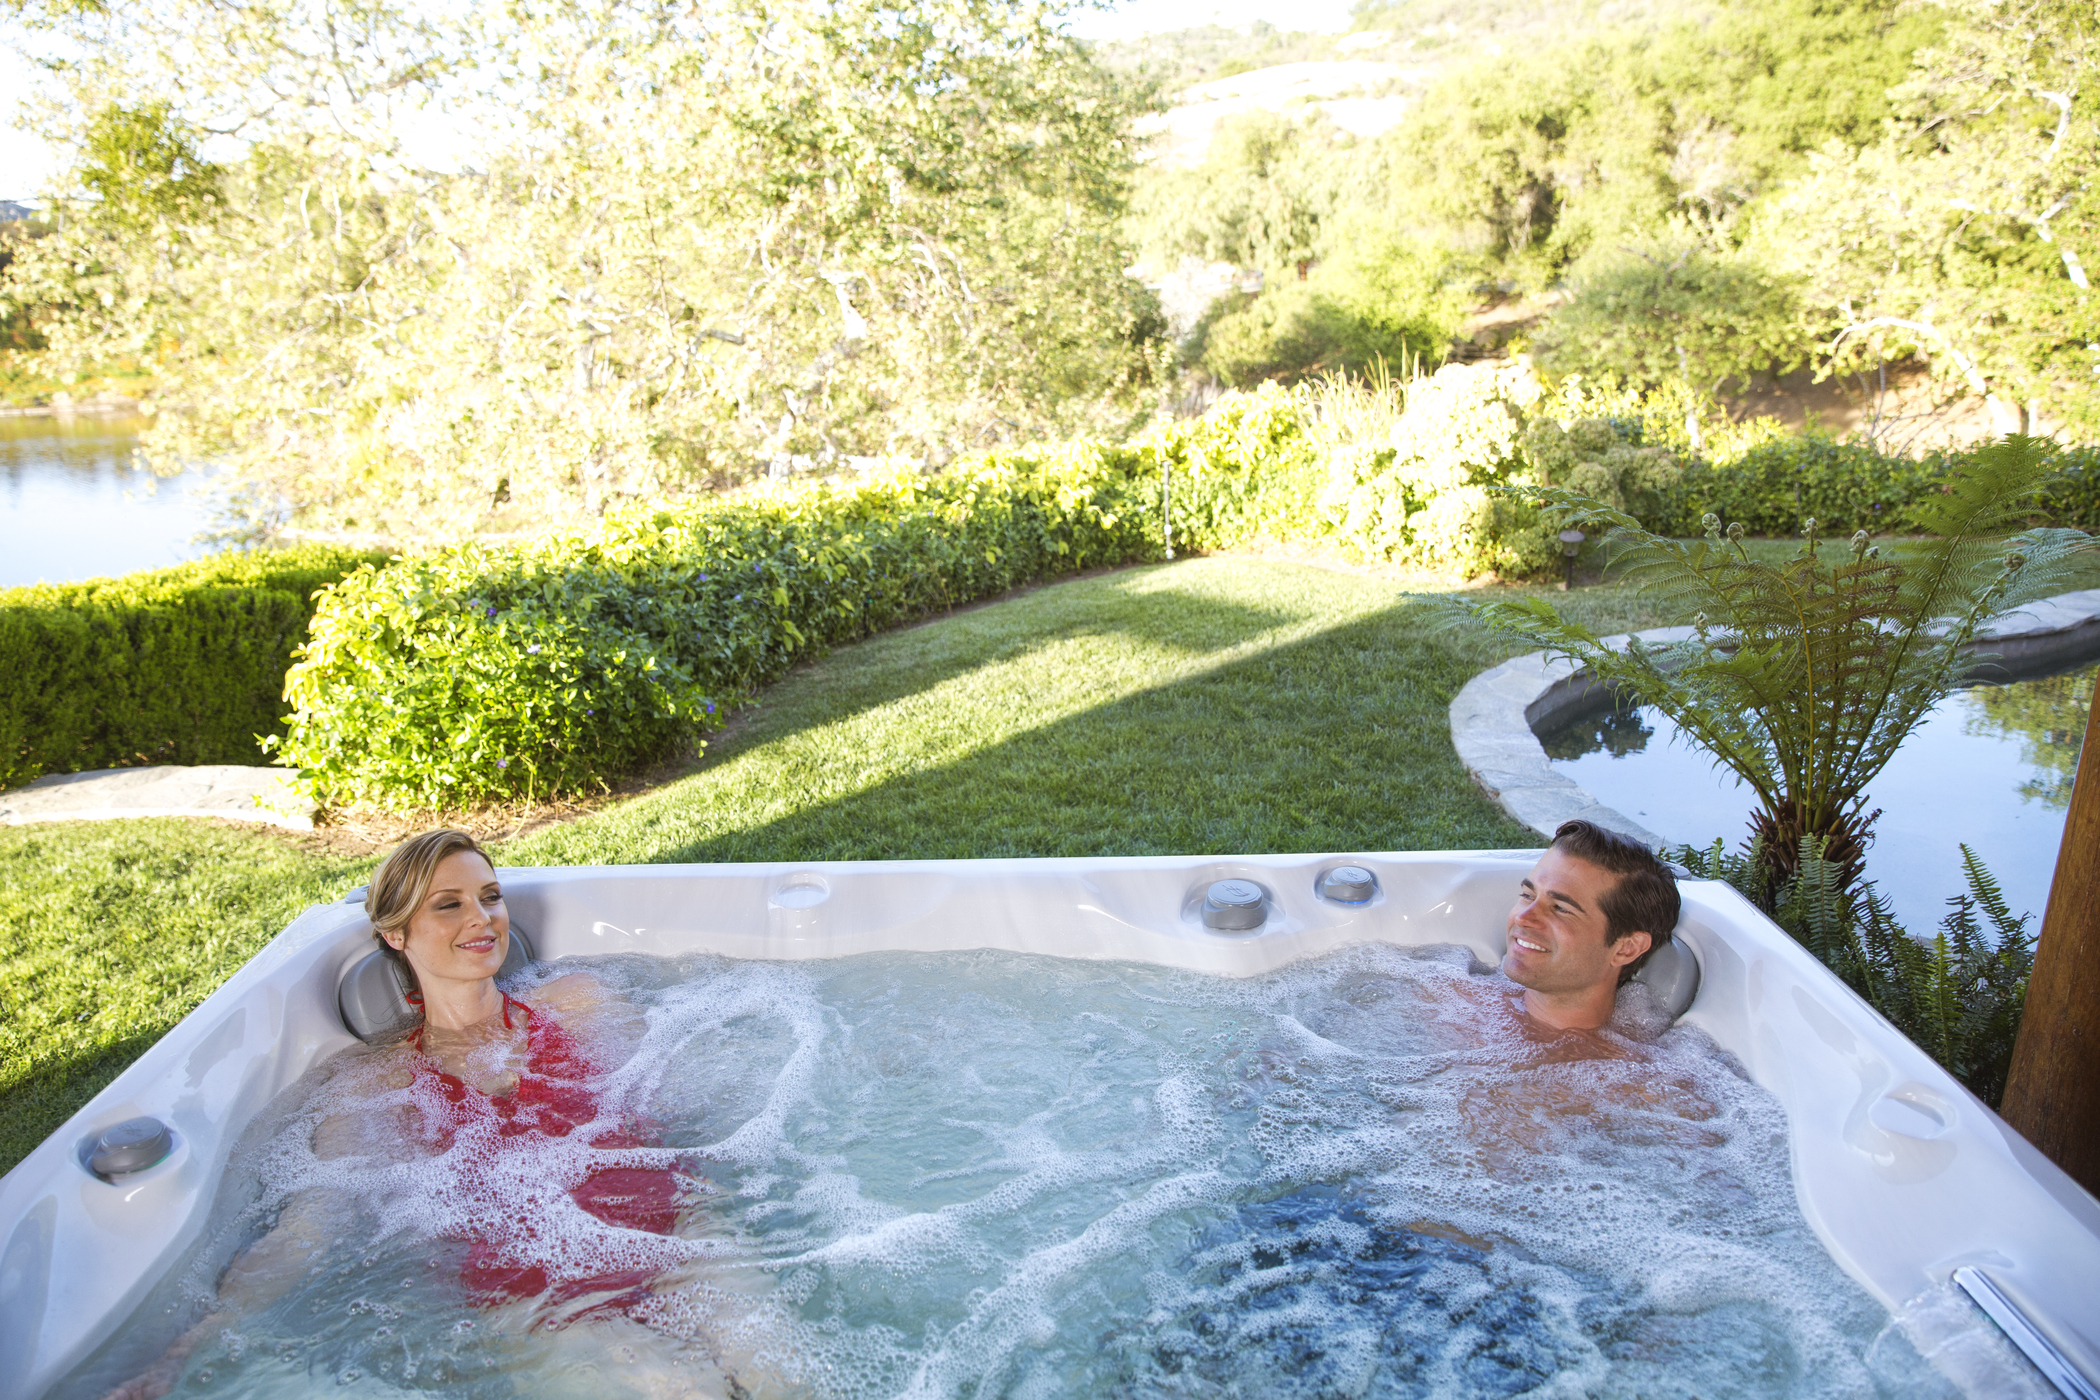 Man and woman soaking in a hot tub Sundance Spas National Pools New Jersey